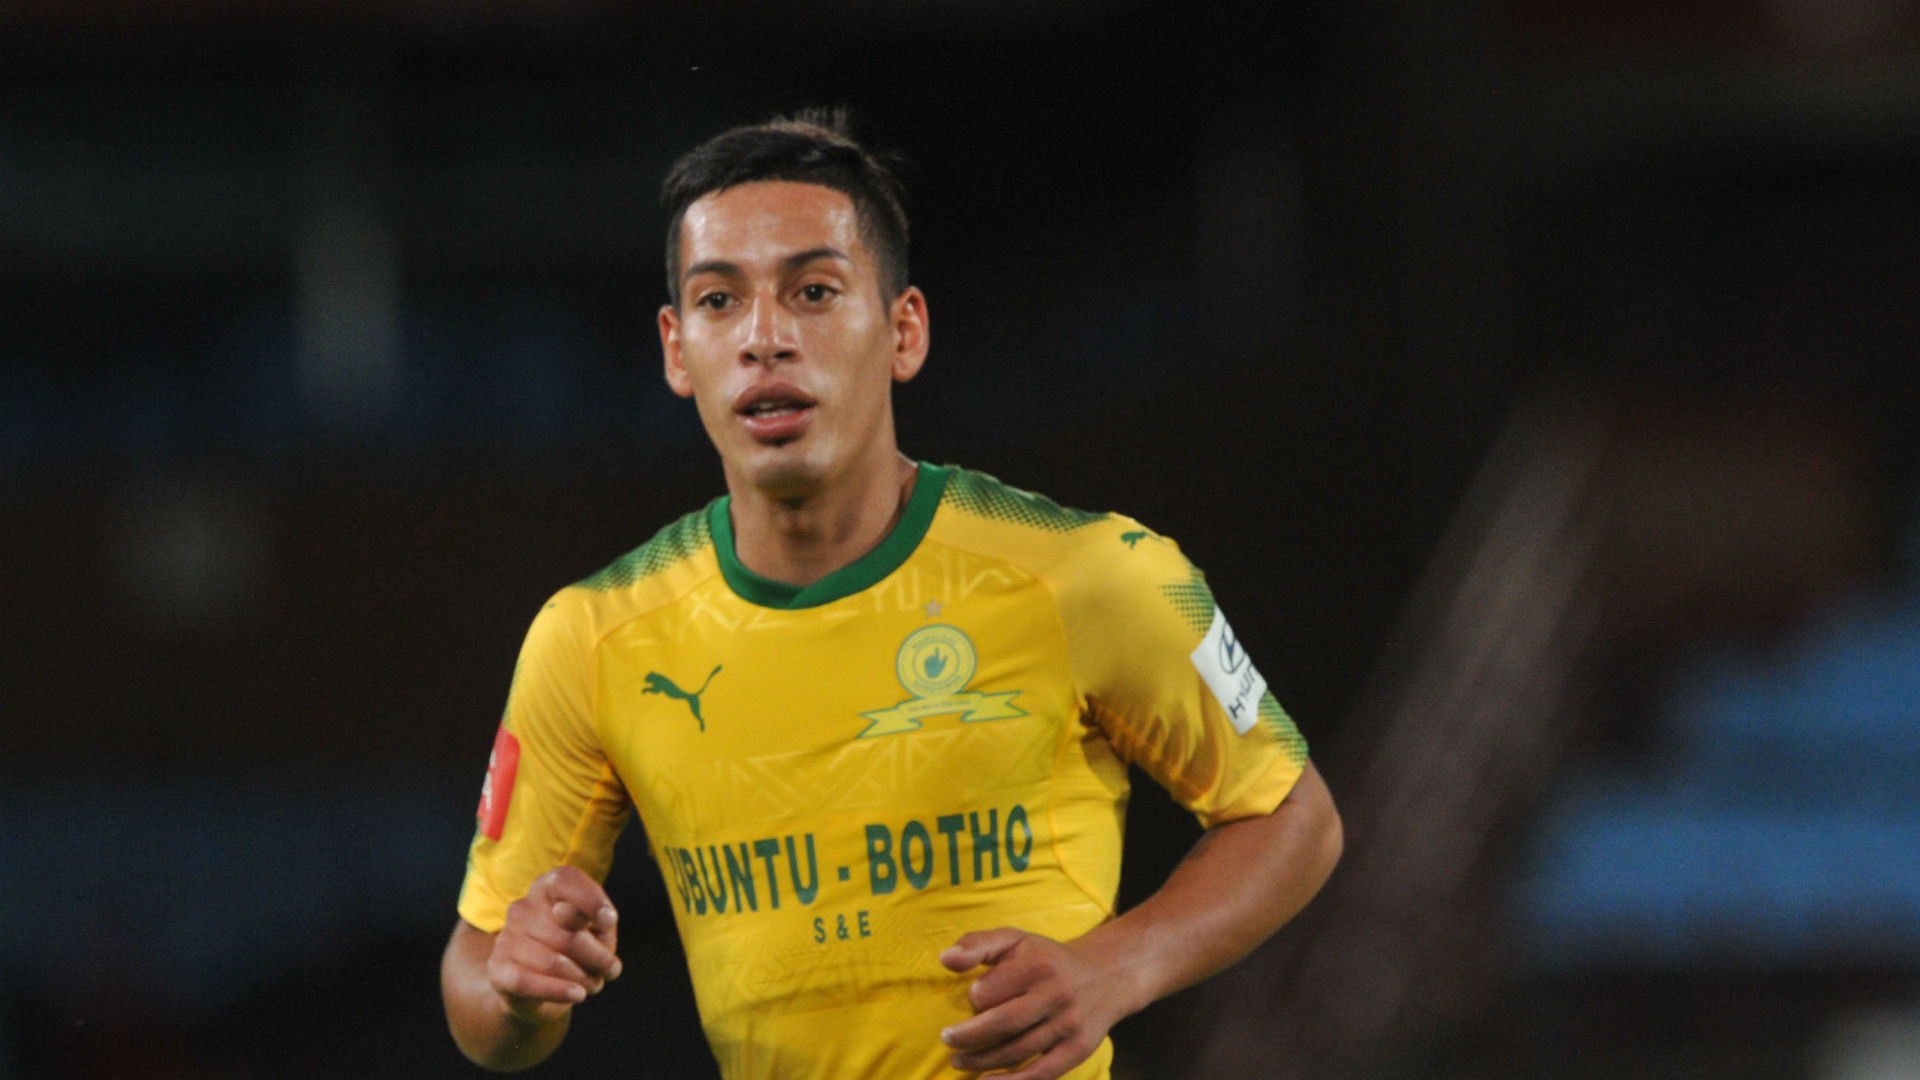 Al Ahly director of football adds more intrigue to speculation surrounding Mamelodi Sundowns forward Sirino